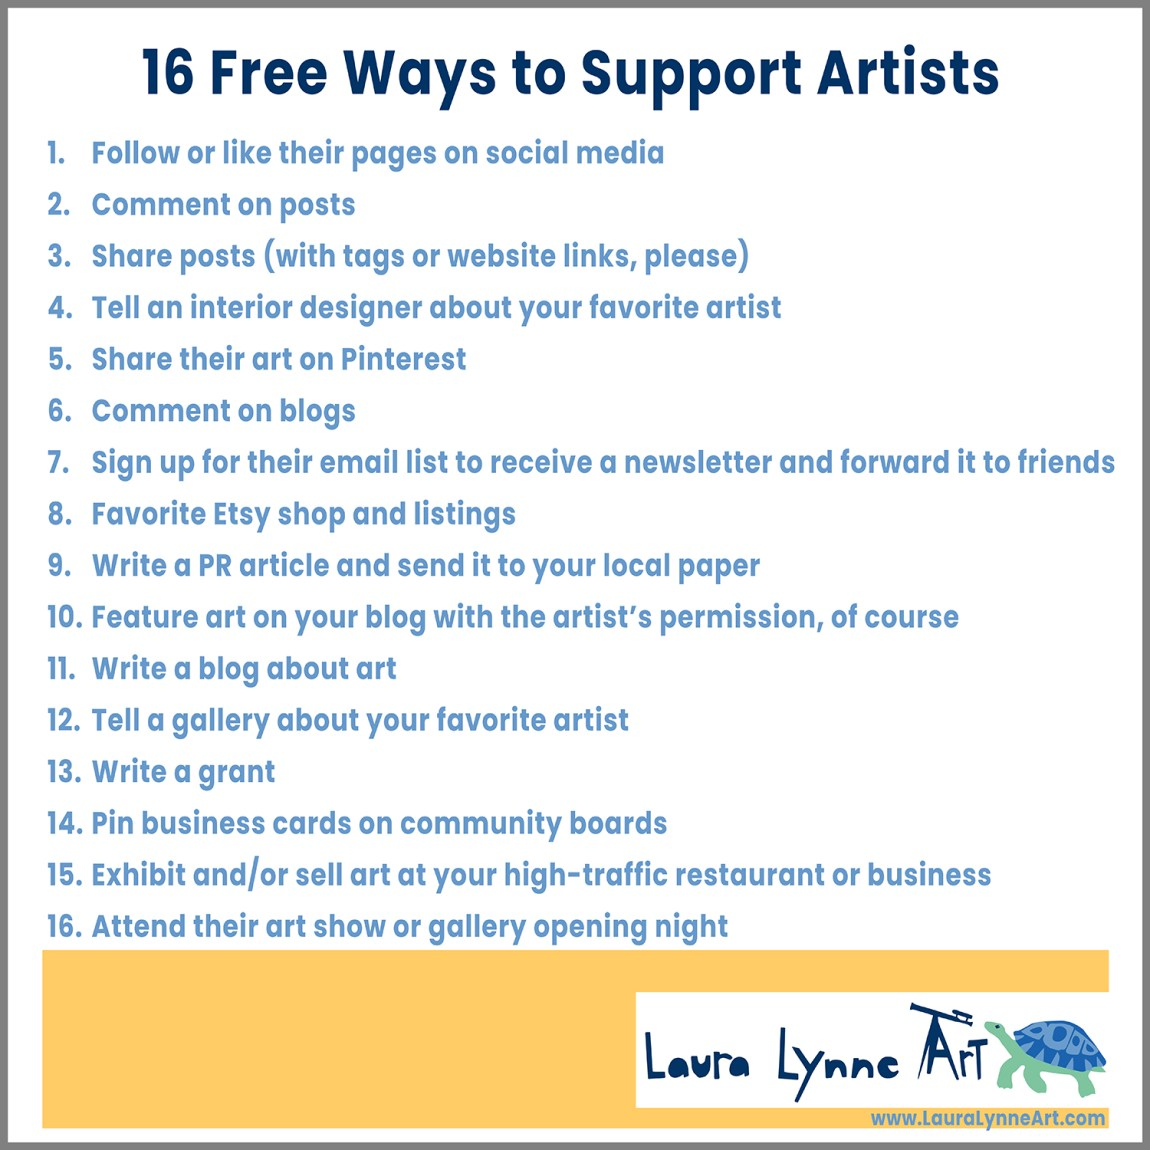 16 free ways to support artists